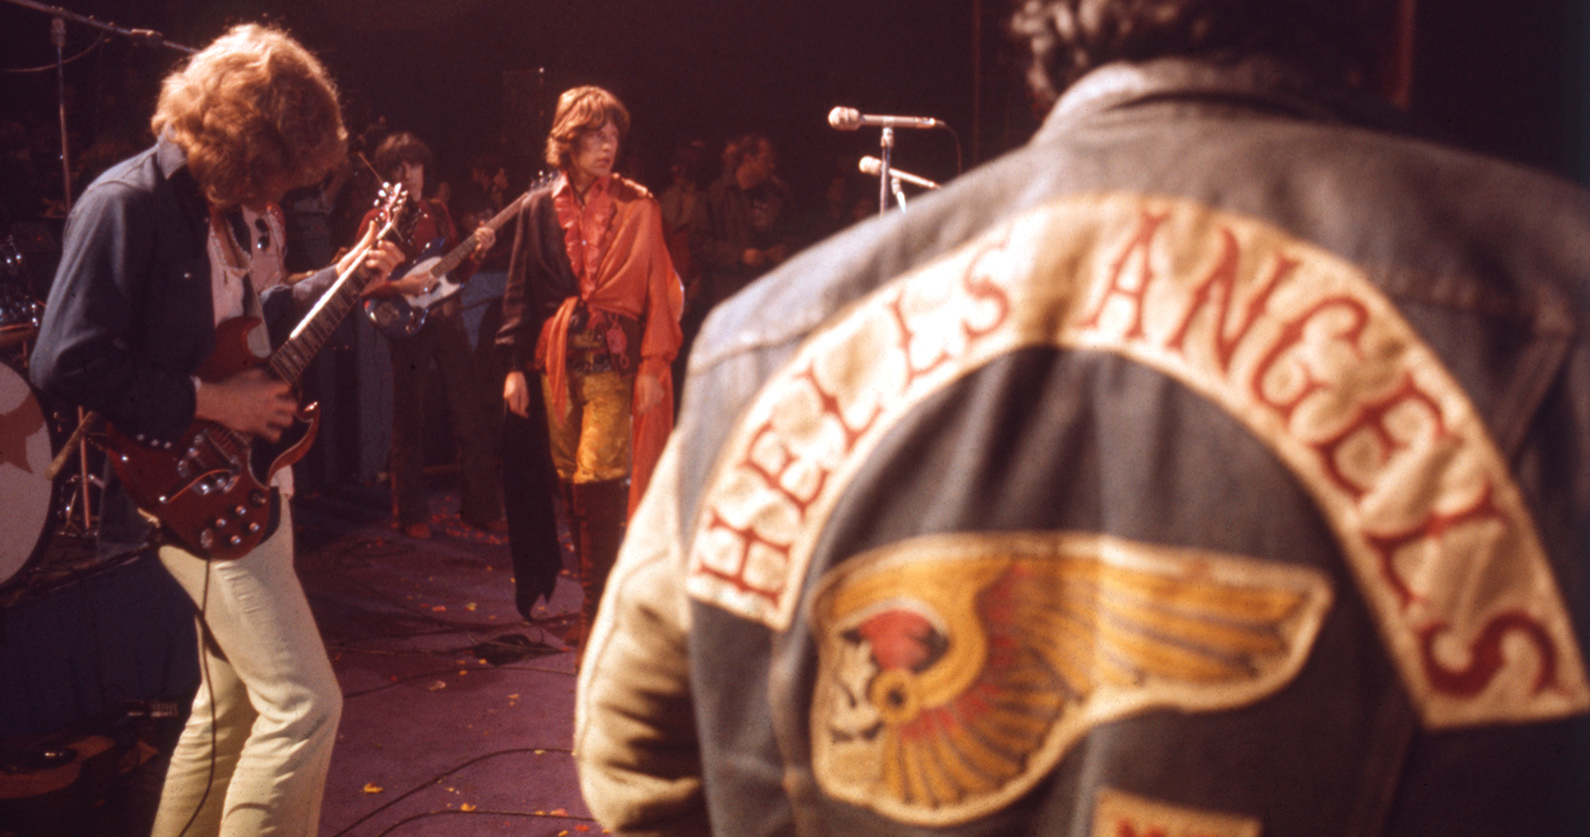 50 years ago the Rolling Stones headlined a 'West Coast Woodstock.'Altamont ended the '60s with chaos and death.